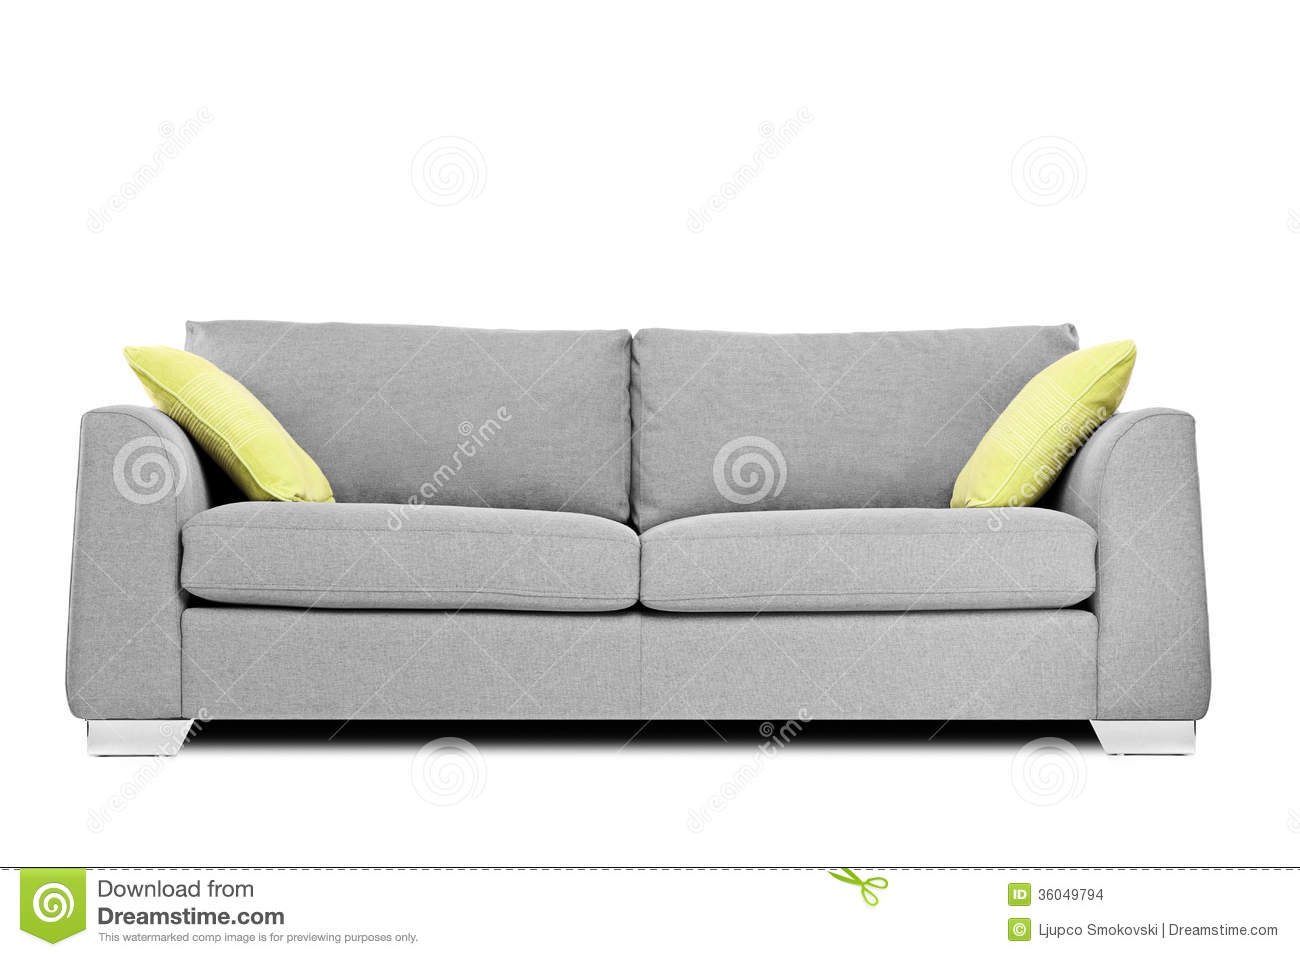 Studio Shot Of A Modern Couch With Pillows Stock Images - Image: 36049794